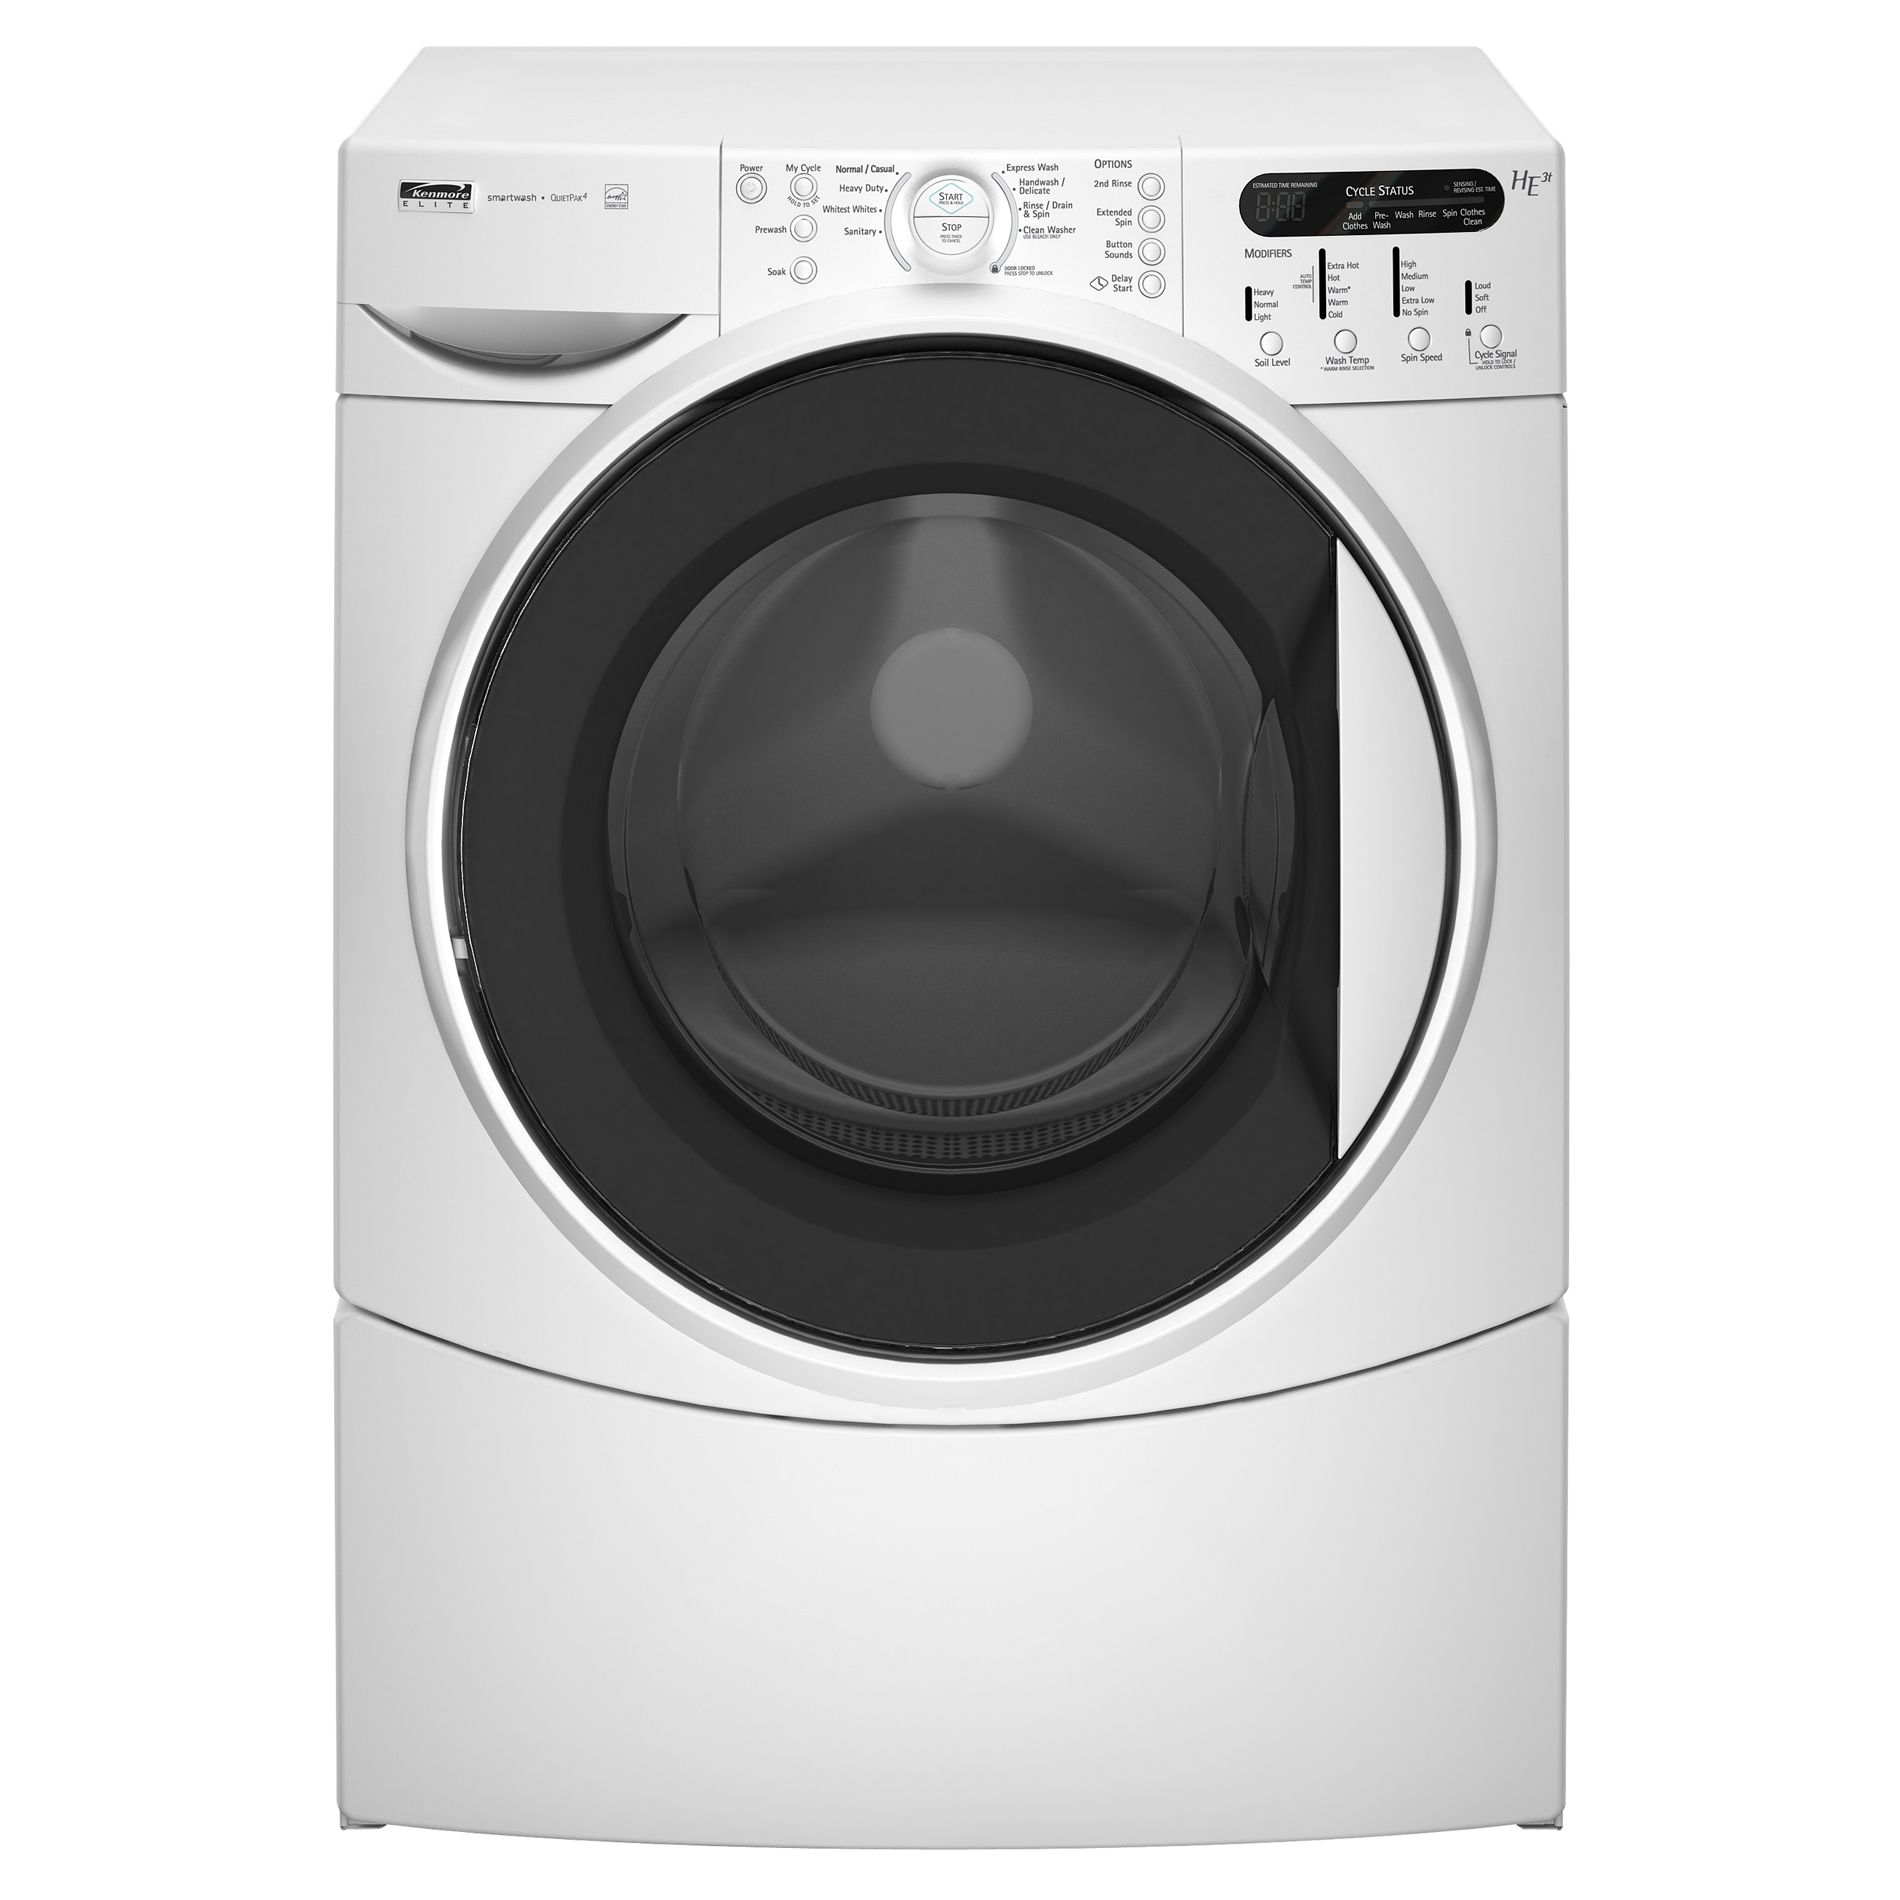 hight resolution of looking for kenmore elite model 11049962600 washer repair he3t schematic